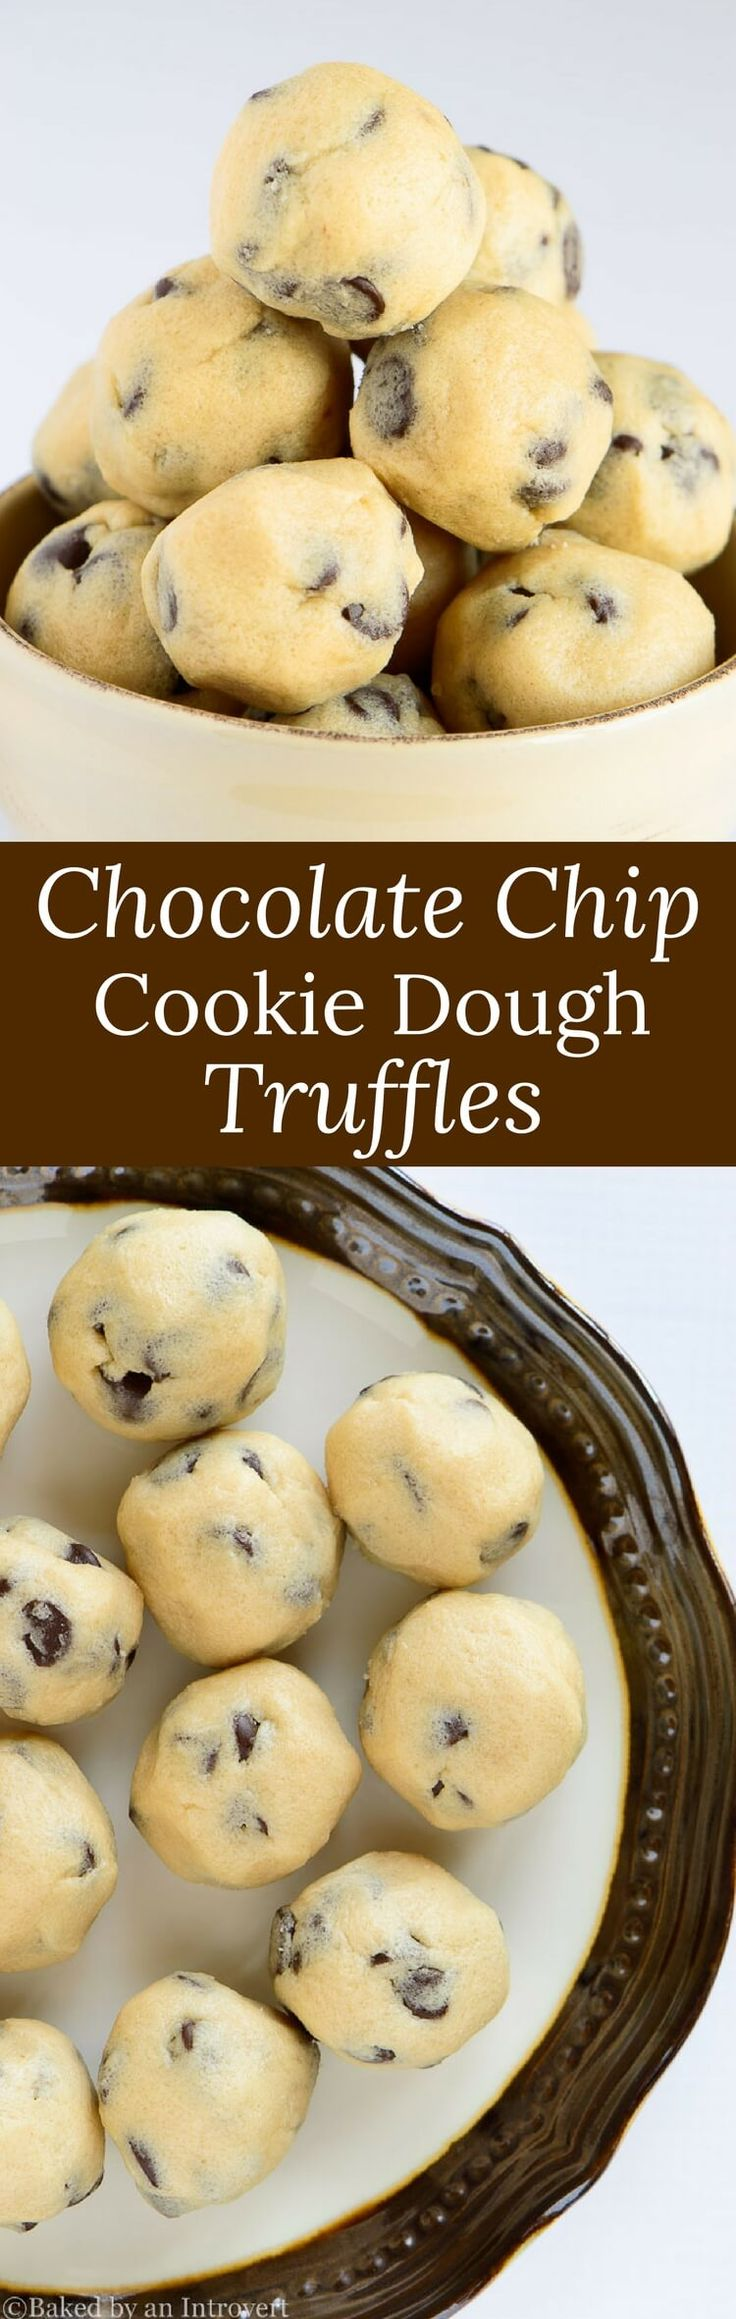 17 Best ideas about Raw Cookie Dough on Pinterest | Cookie ...